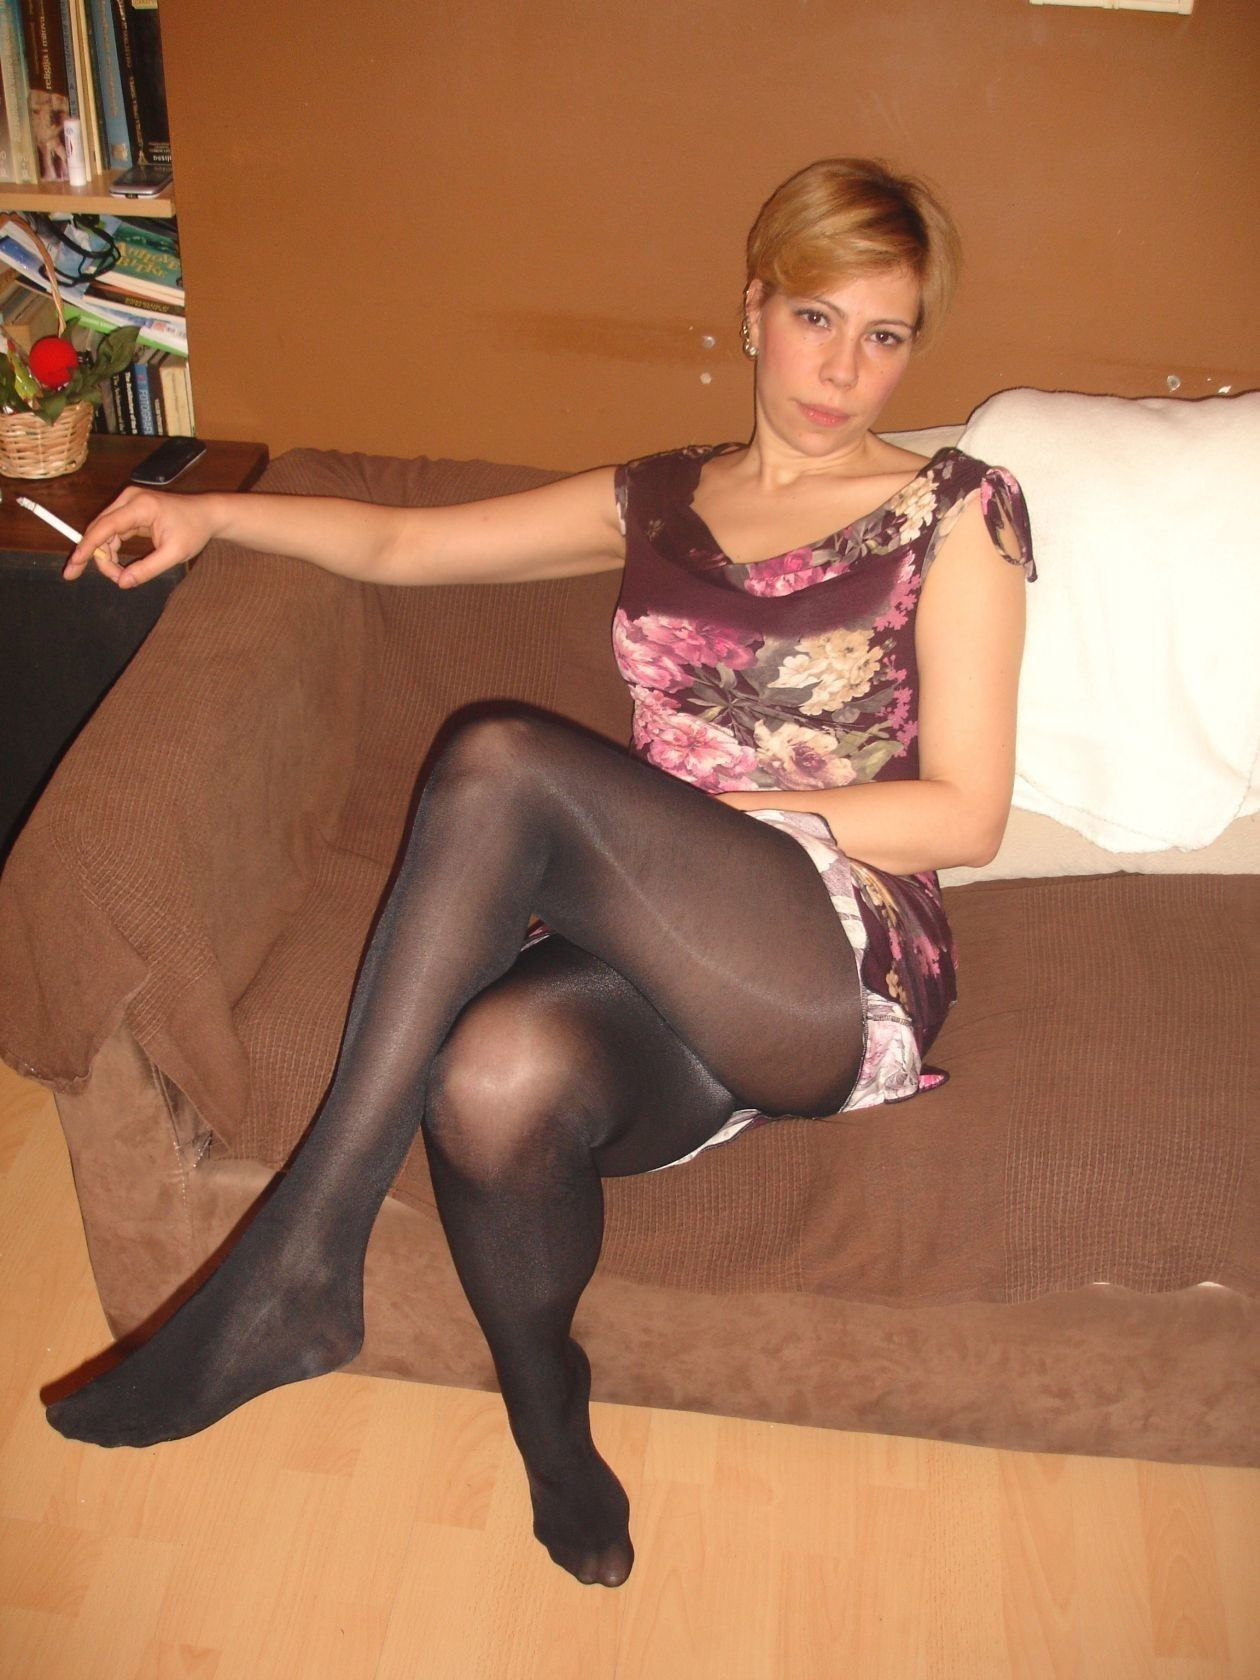 Pin On Candid Stocking Girls-1404